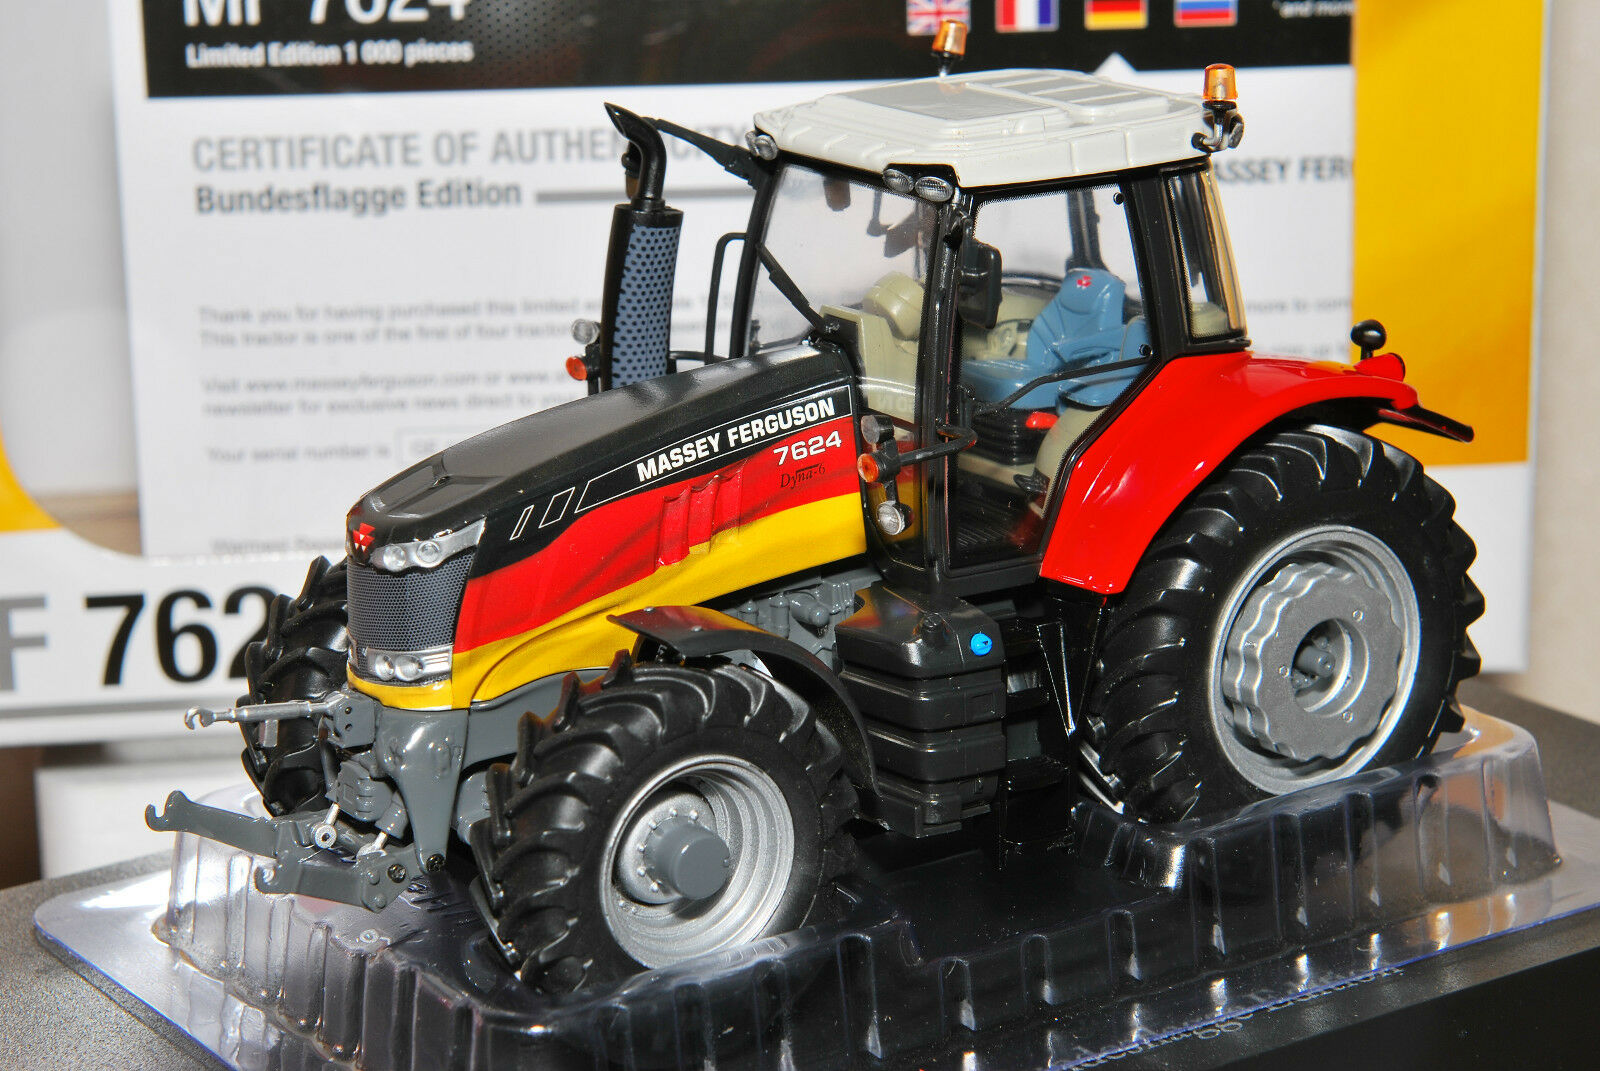 Massey Ferguson MF 7624 Limited Limited Limited Edition Bundesflagge Agritechnica no 2017 1 32 26d207